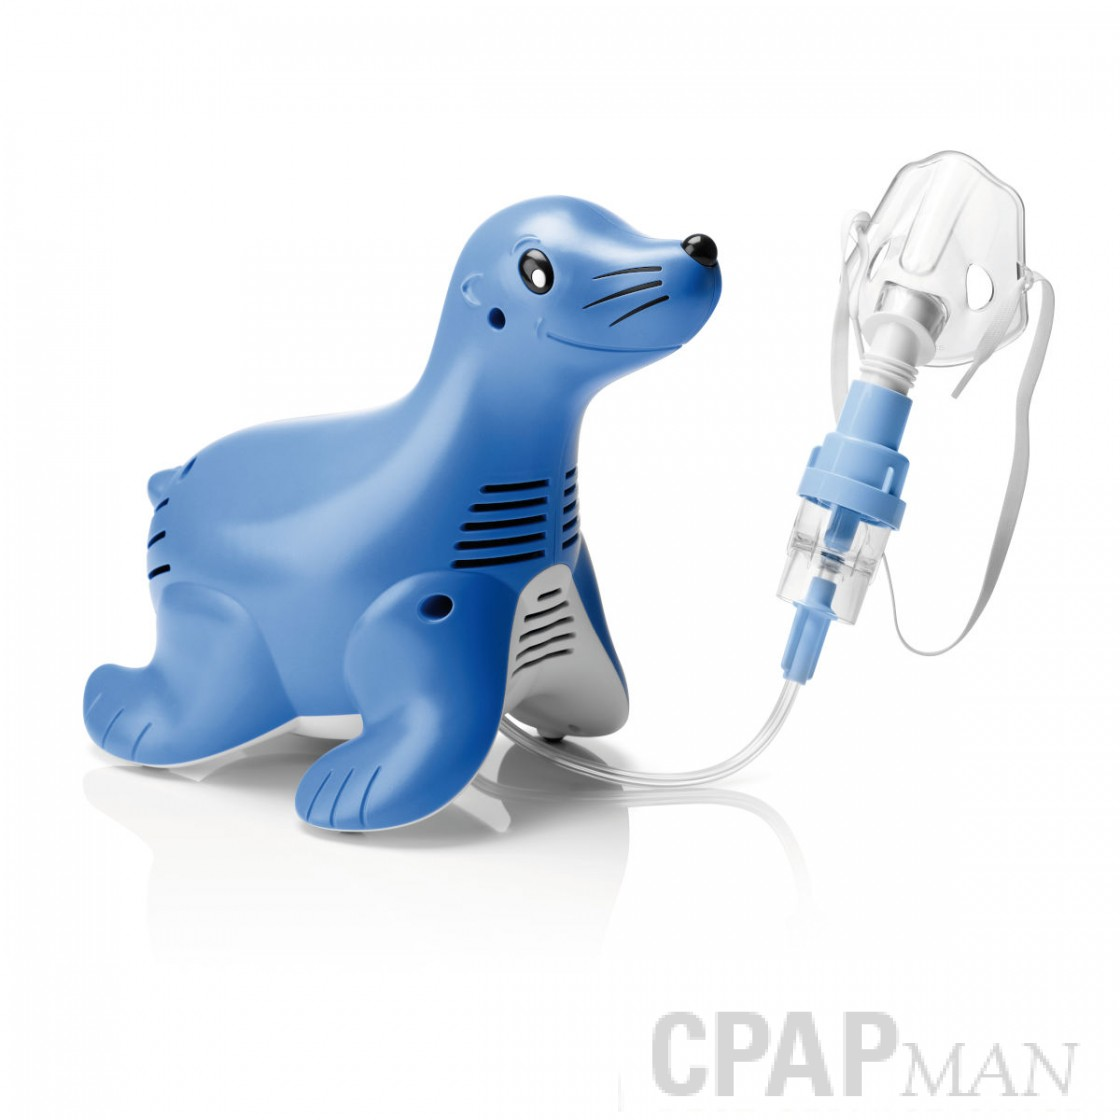 Respironics Sami the Seal Nebulizer Compressor